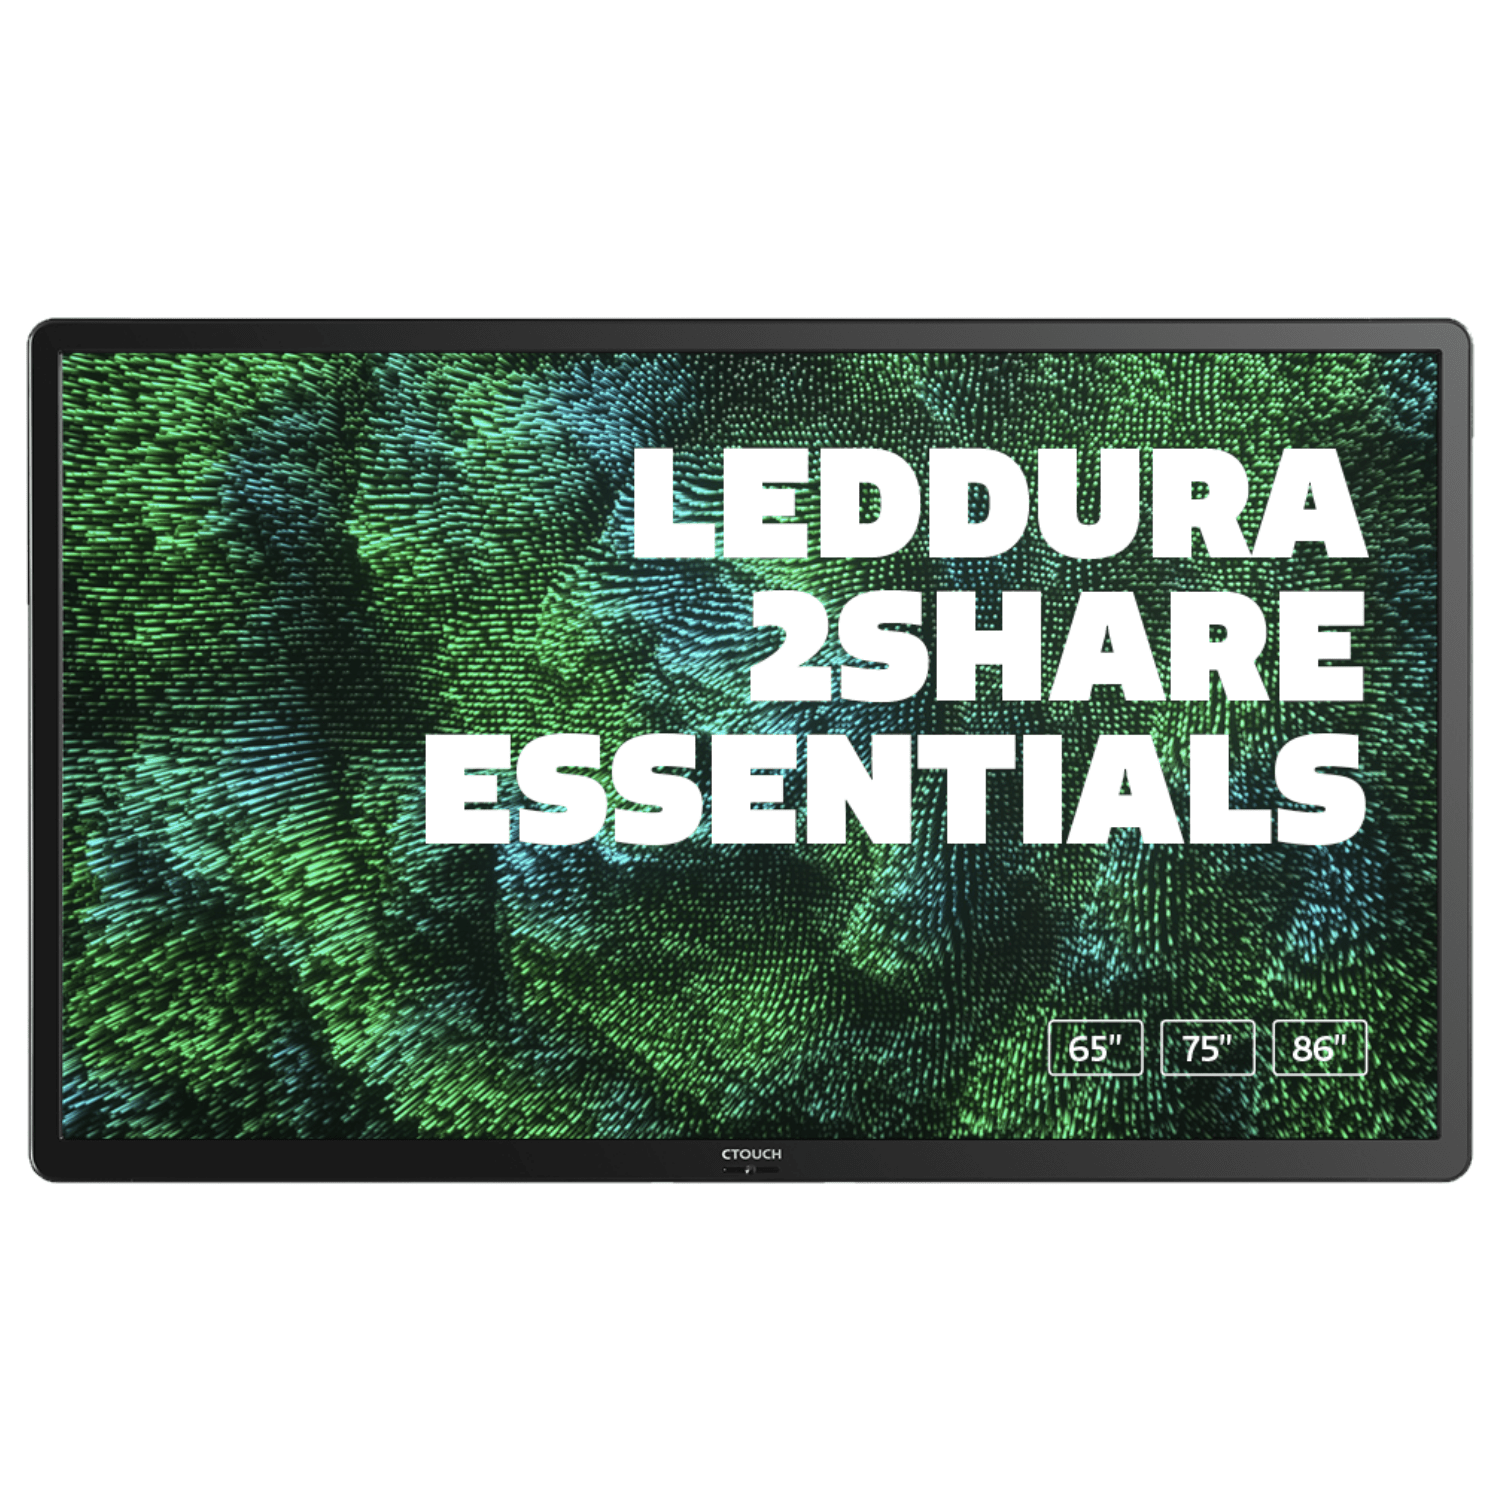 CTOUCH Leddura 2SHARE Essentials 75 inch